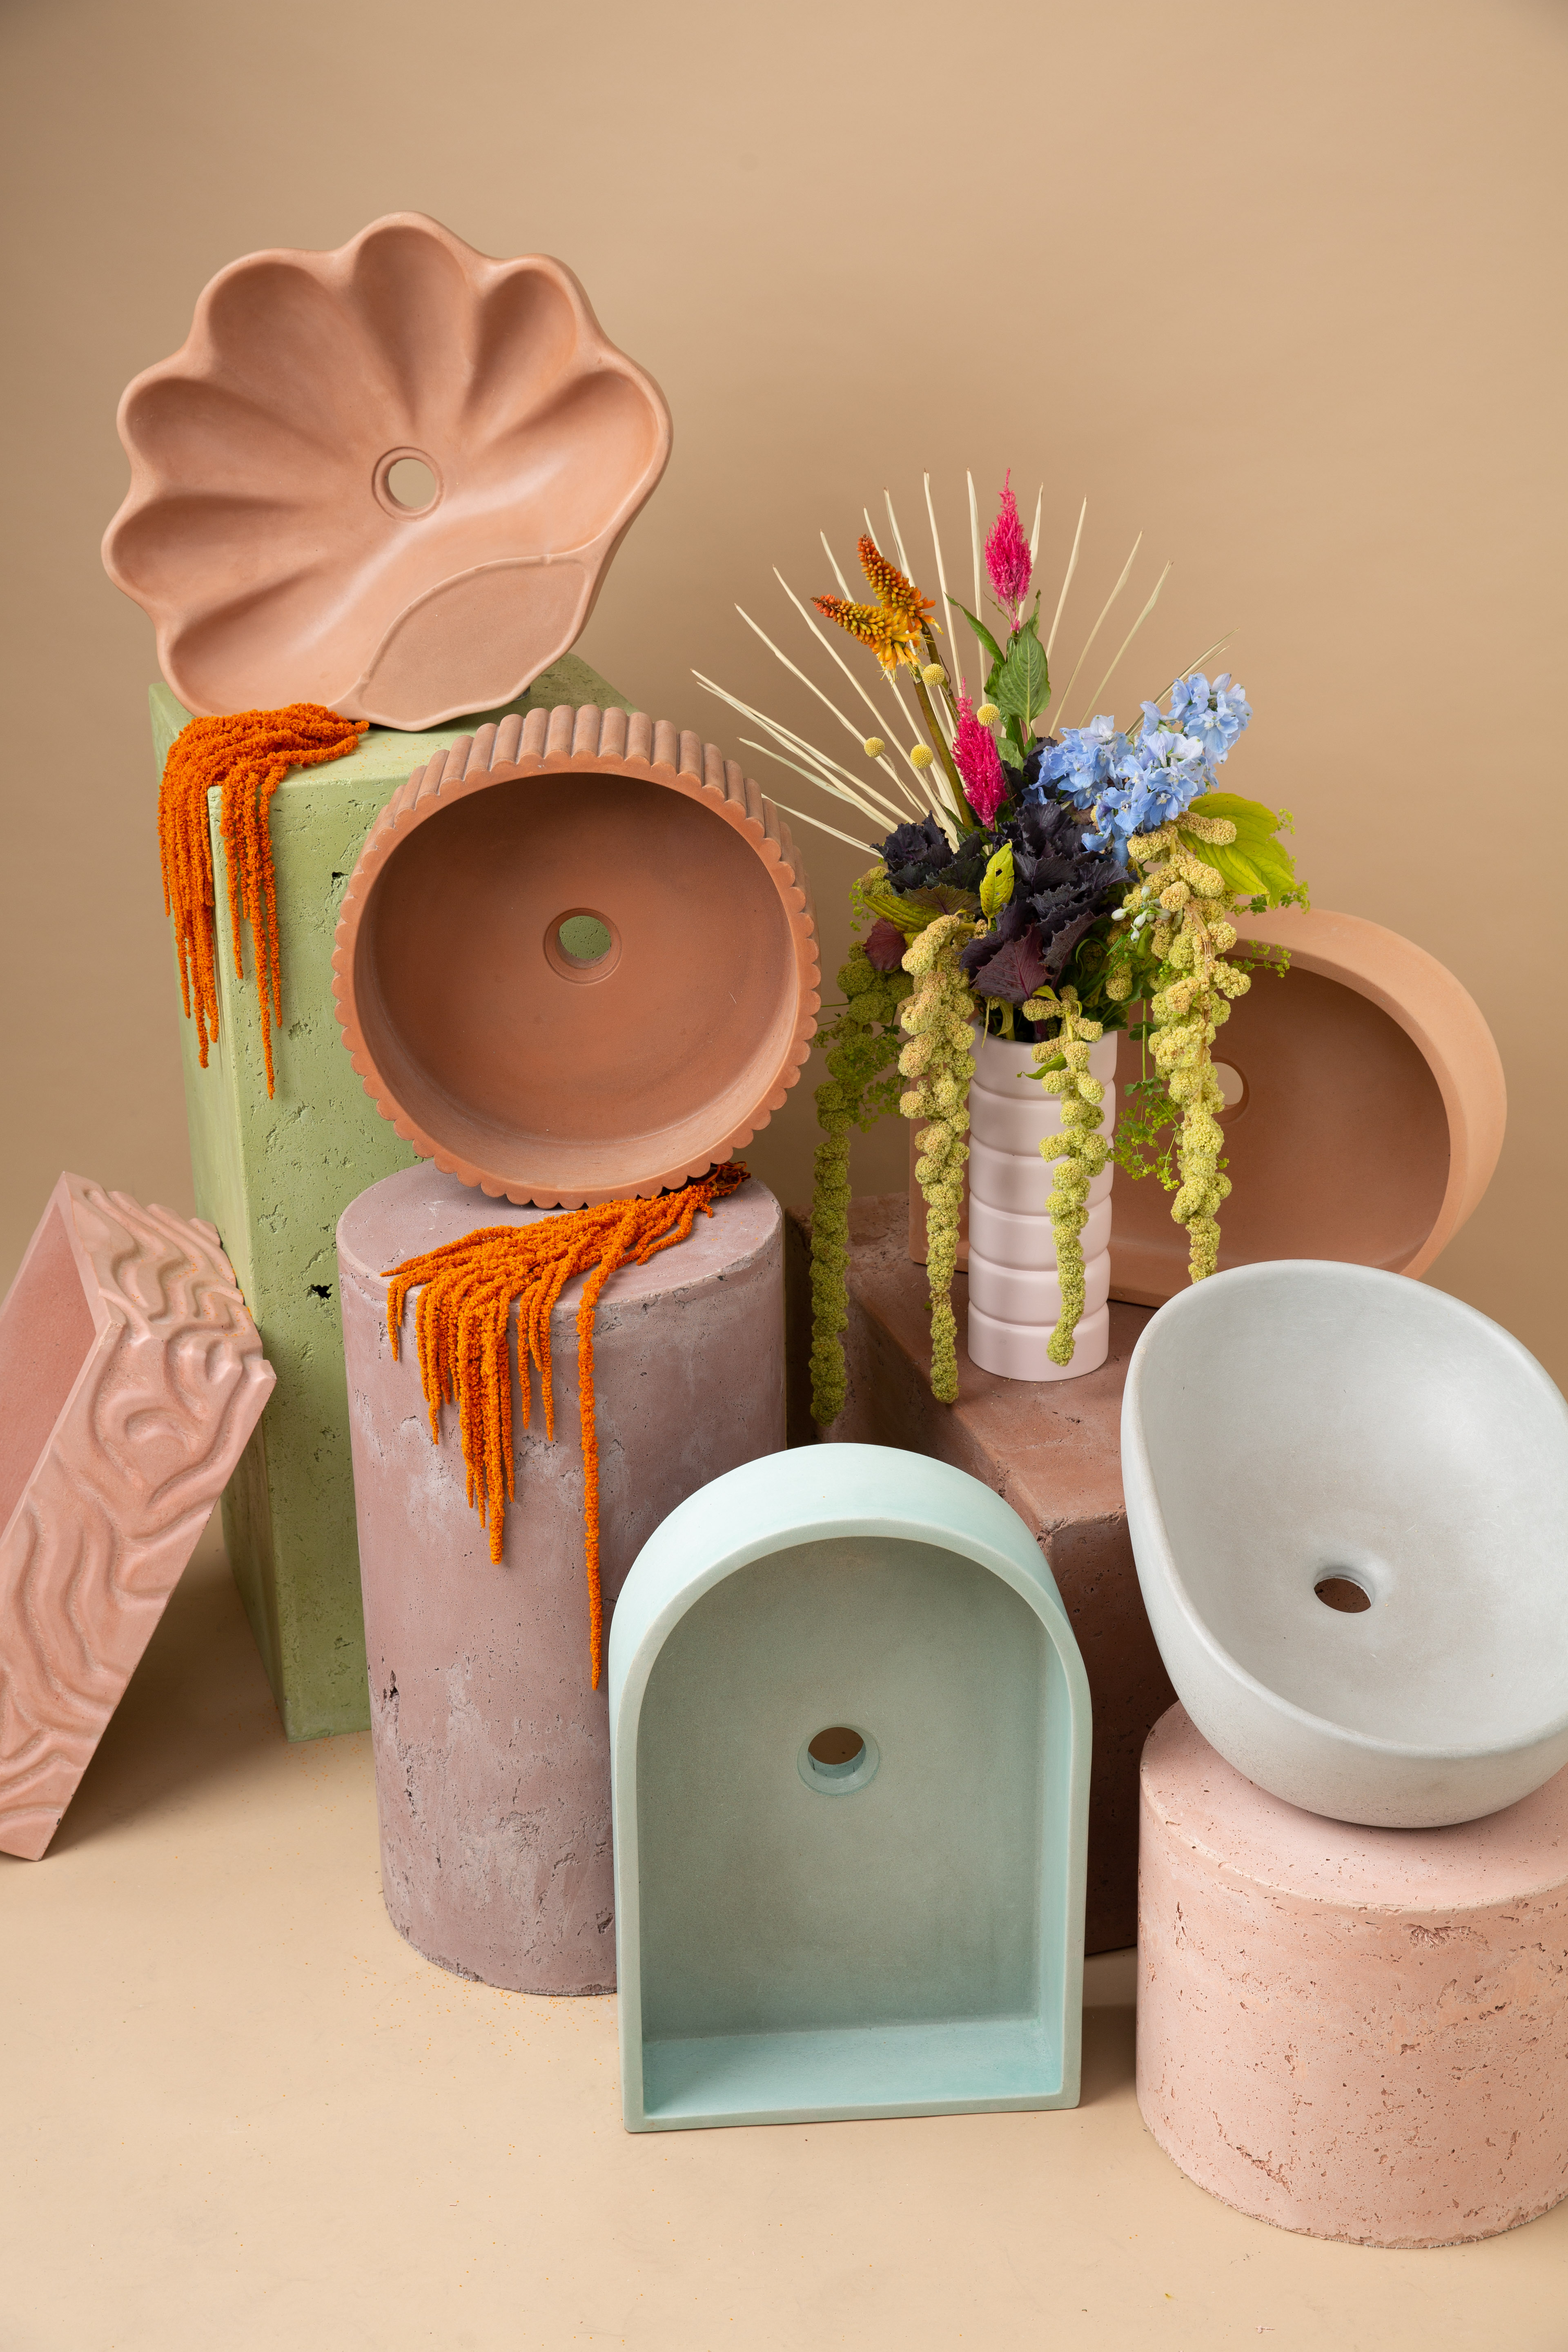 Smith and Goat concrete trays, sinks, and vases